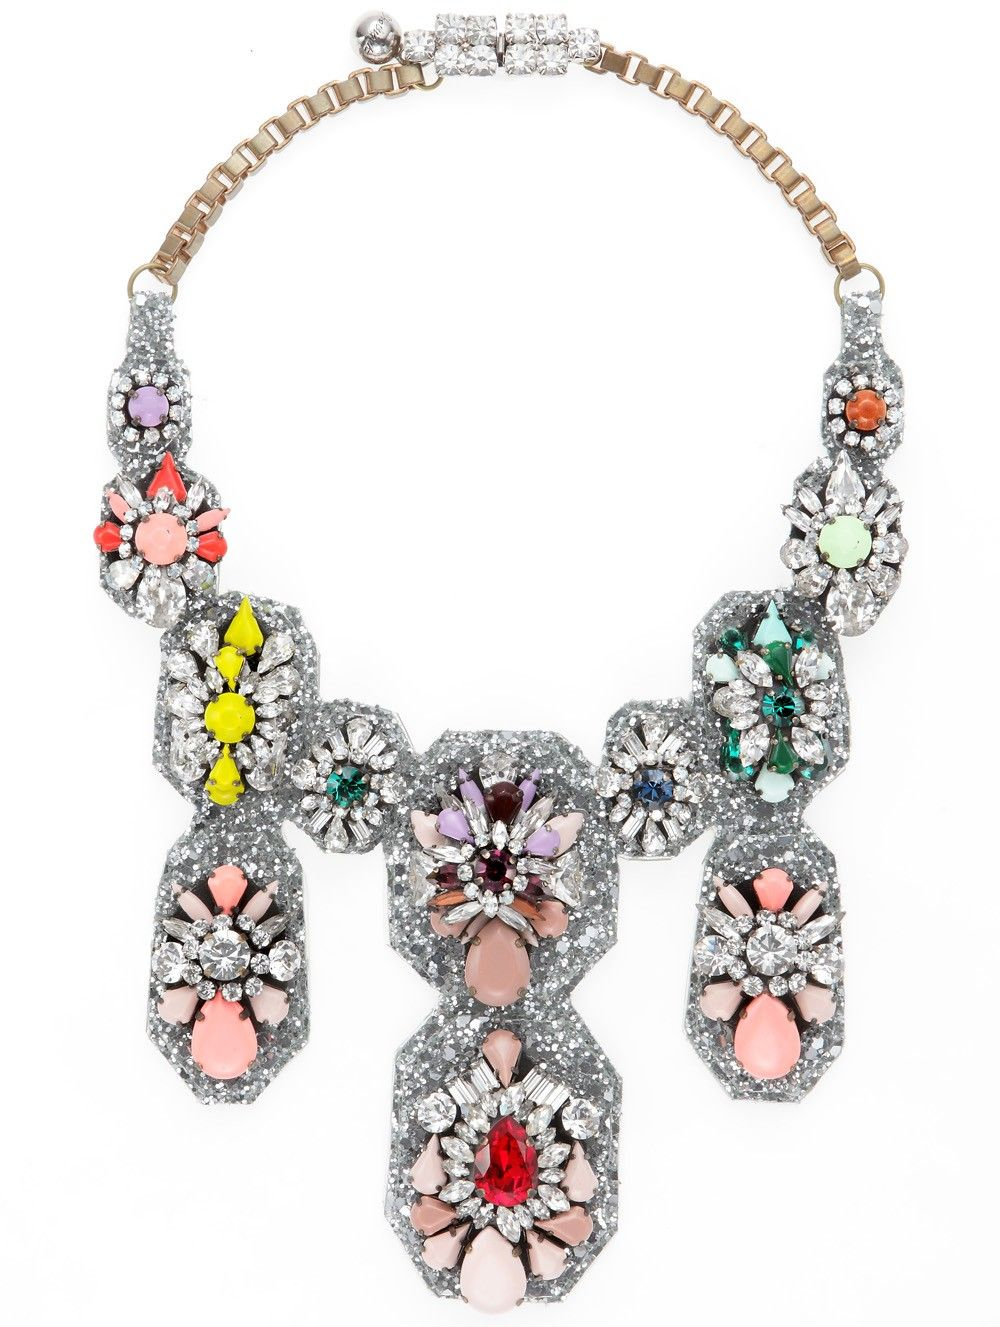 Look - Jewelery trendy and accessories in shourouk collection video